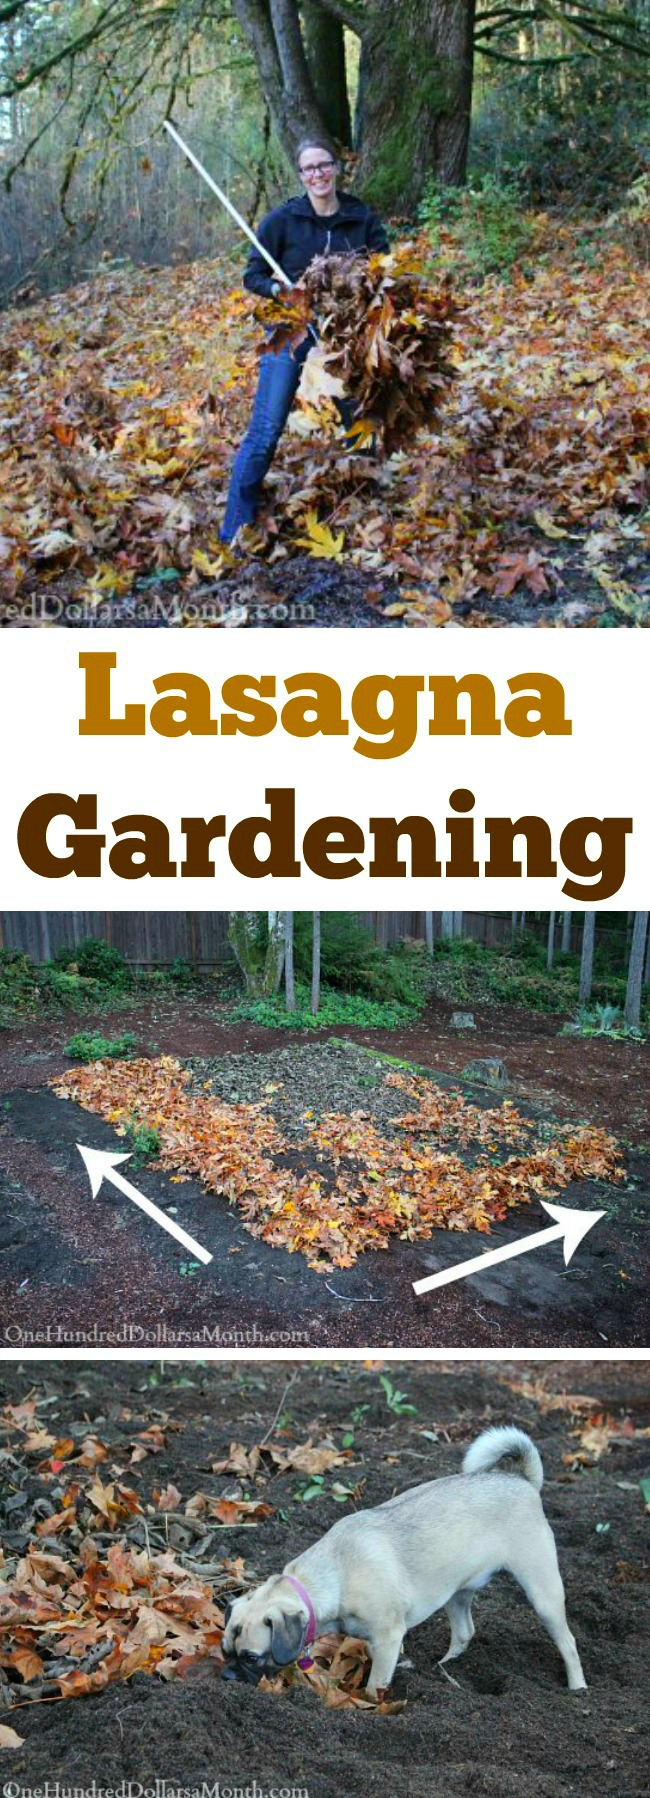 Lasagna Gardening – Adding Another Layer of Leaves